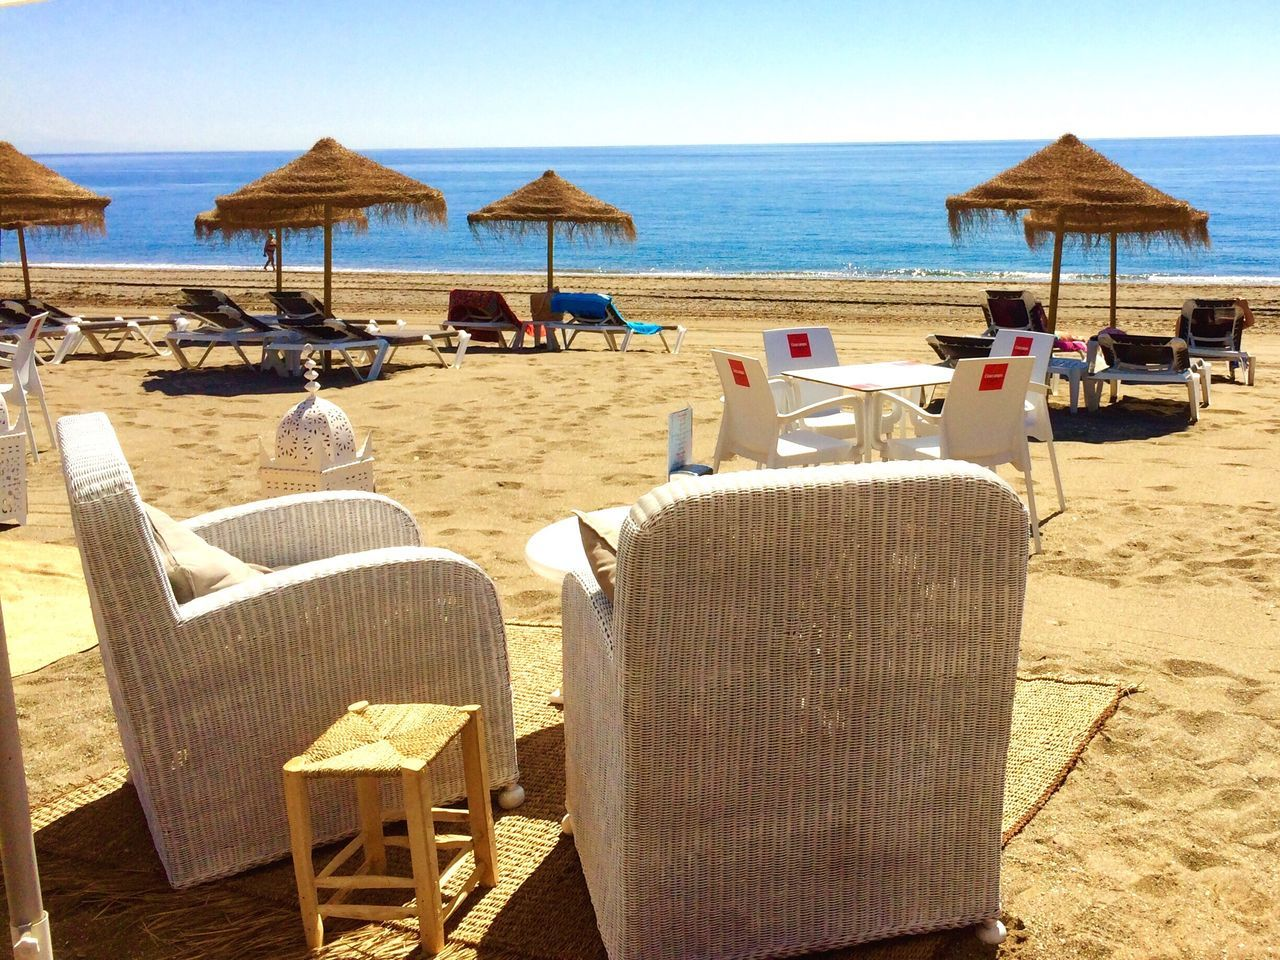 SPAIN Casares Costa Beach Sand Sea Shore Horizon Over Water Chair Water Summer Vacations Sun Lounger Outdoor Chair Canopy Incidental People Nature Relaxation Tranquility Outdoors Tranquil Scene Day Table